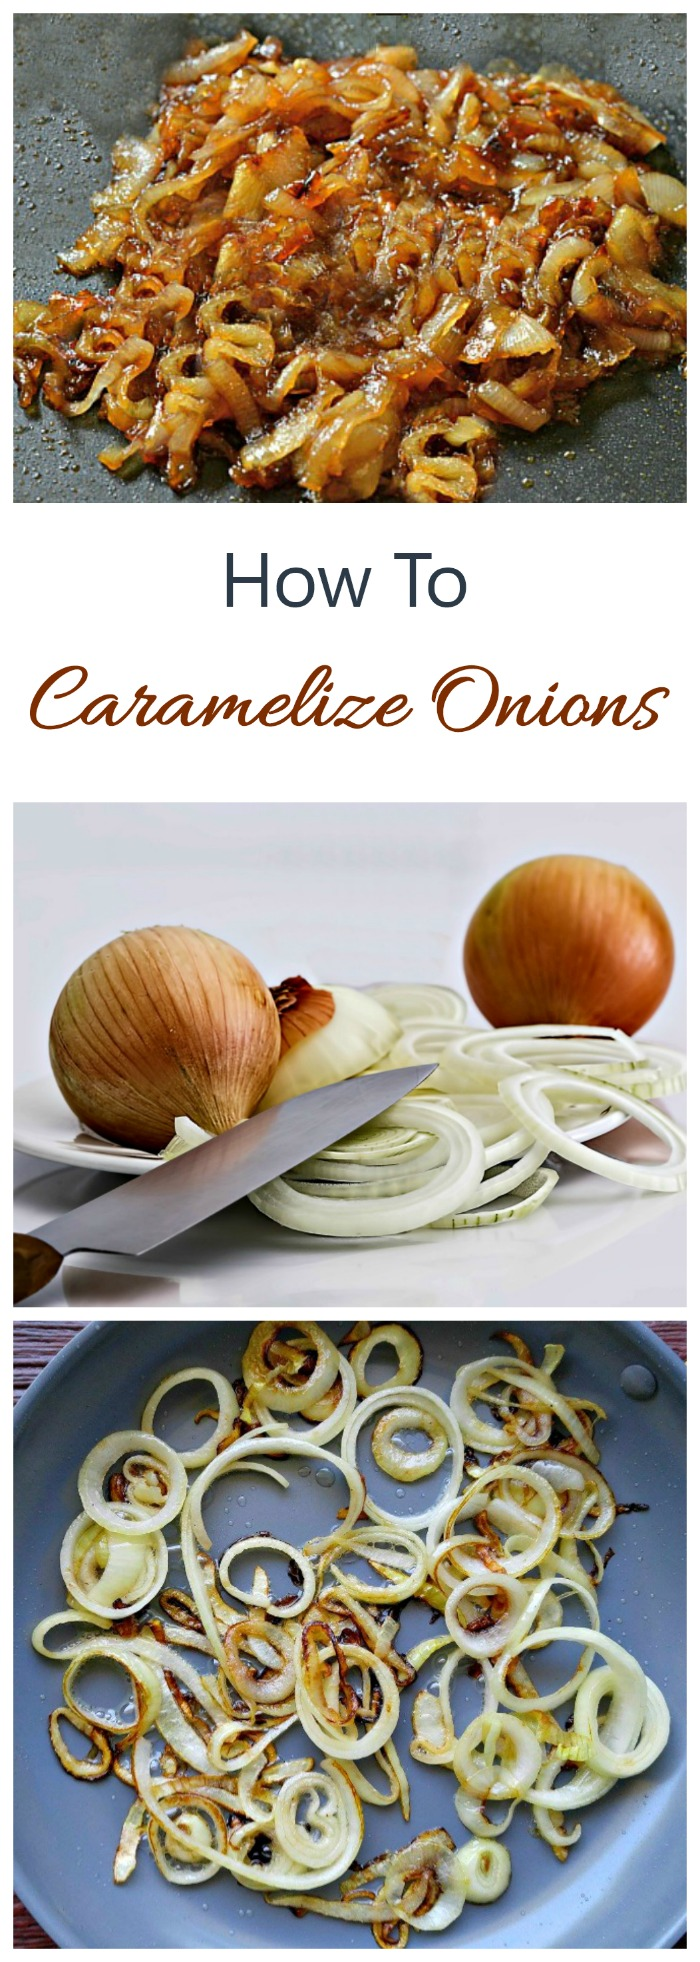 How To Caramelize Onions - Tips for Success Every Time